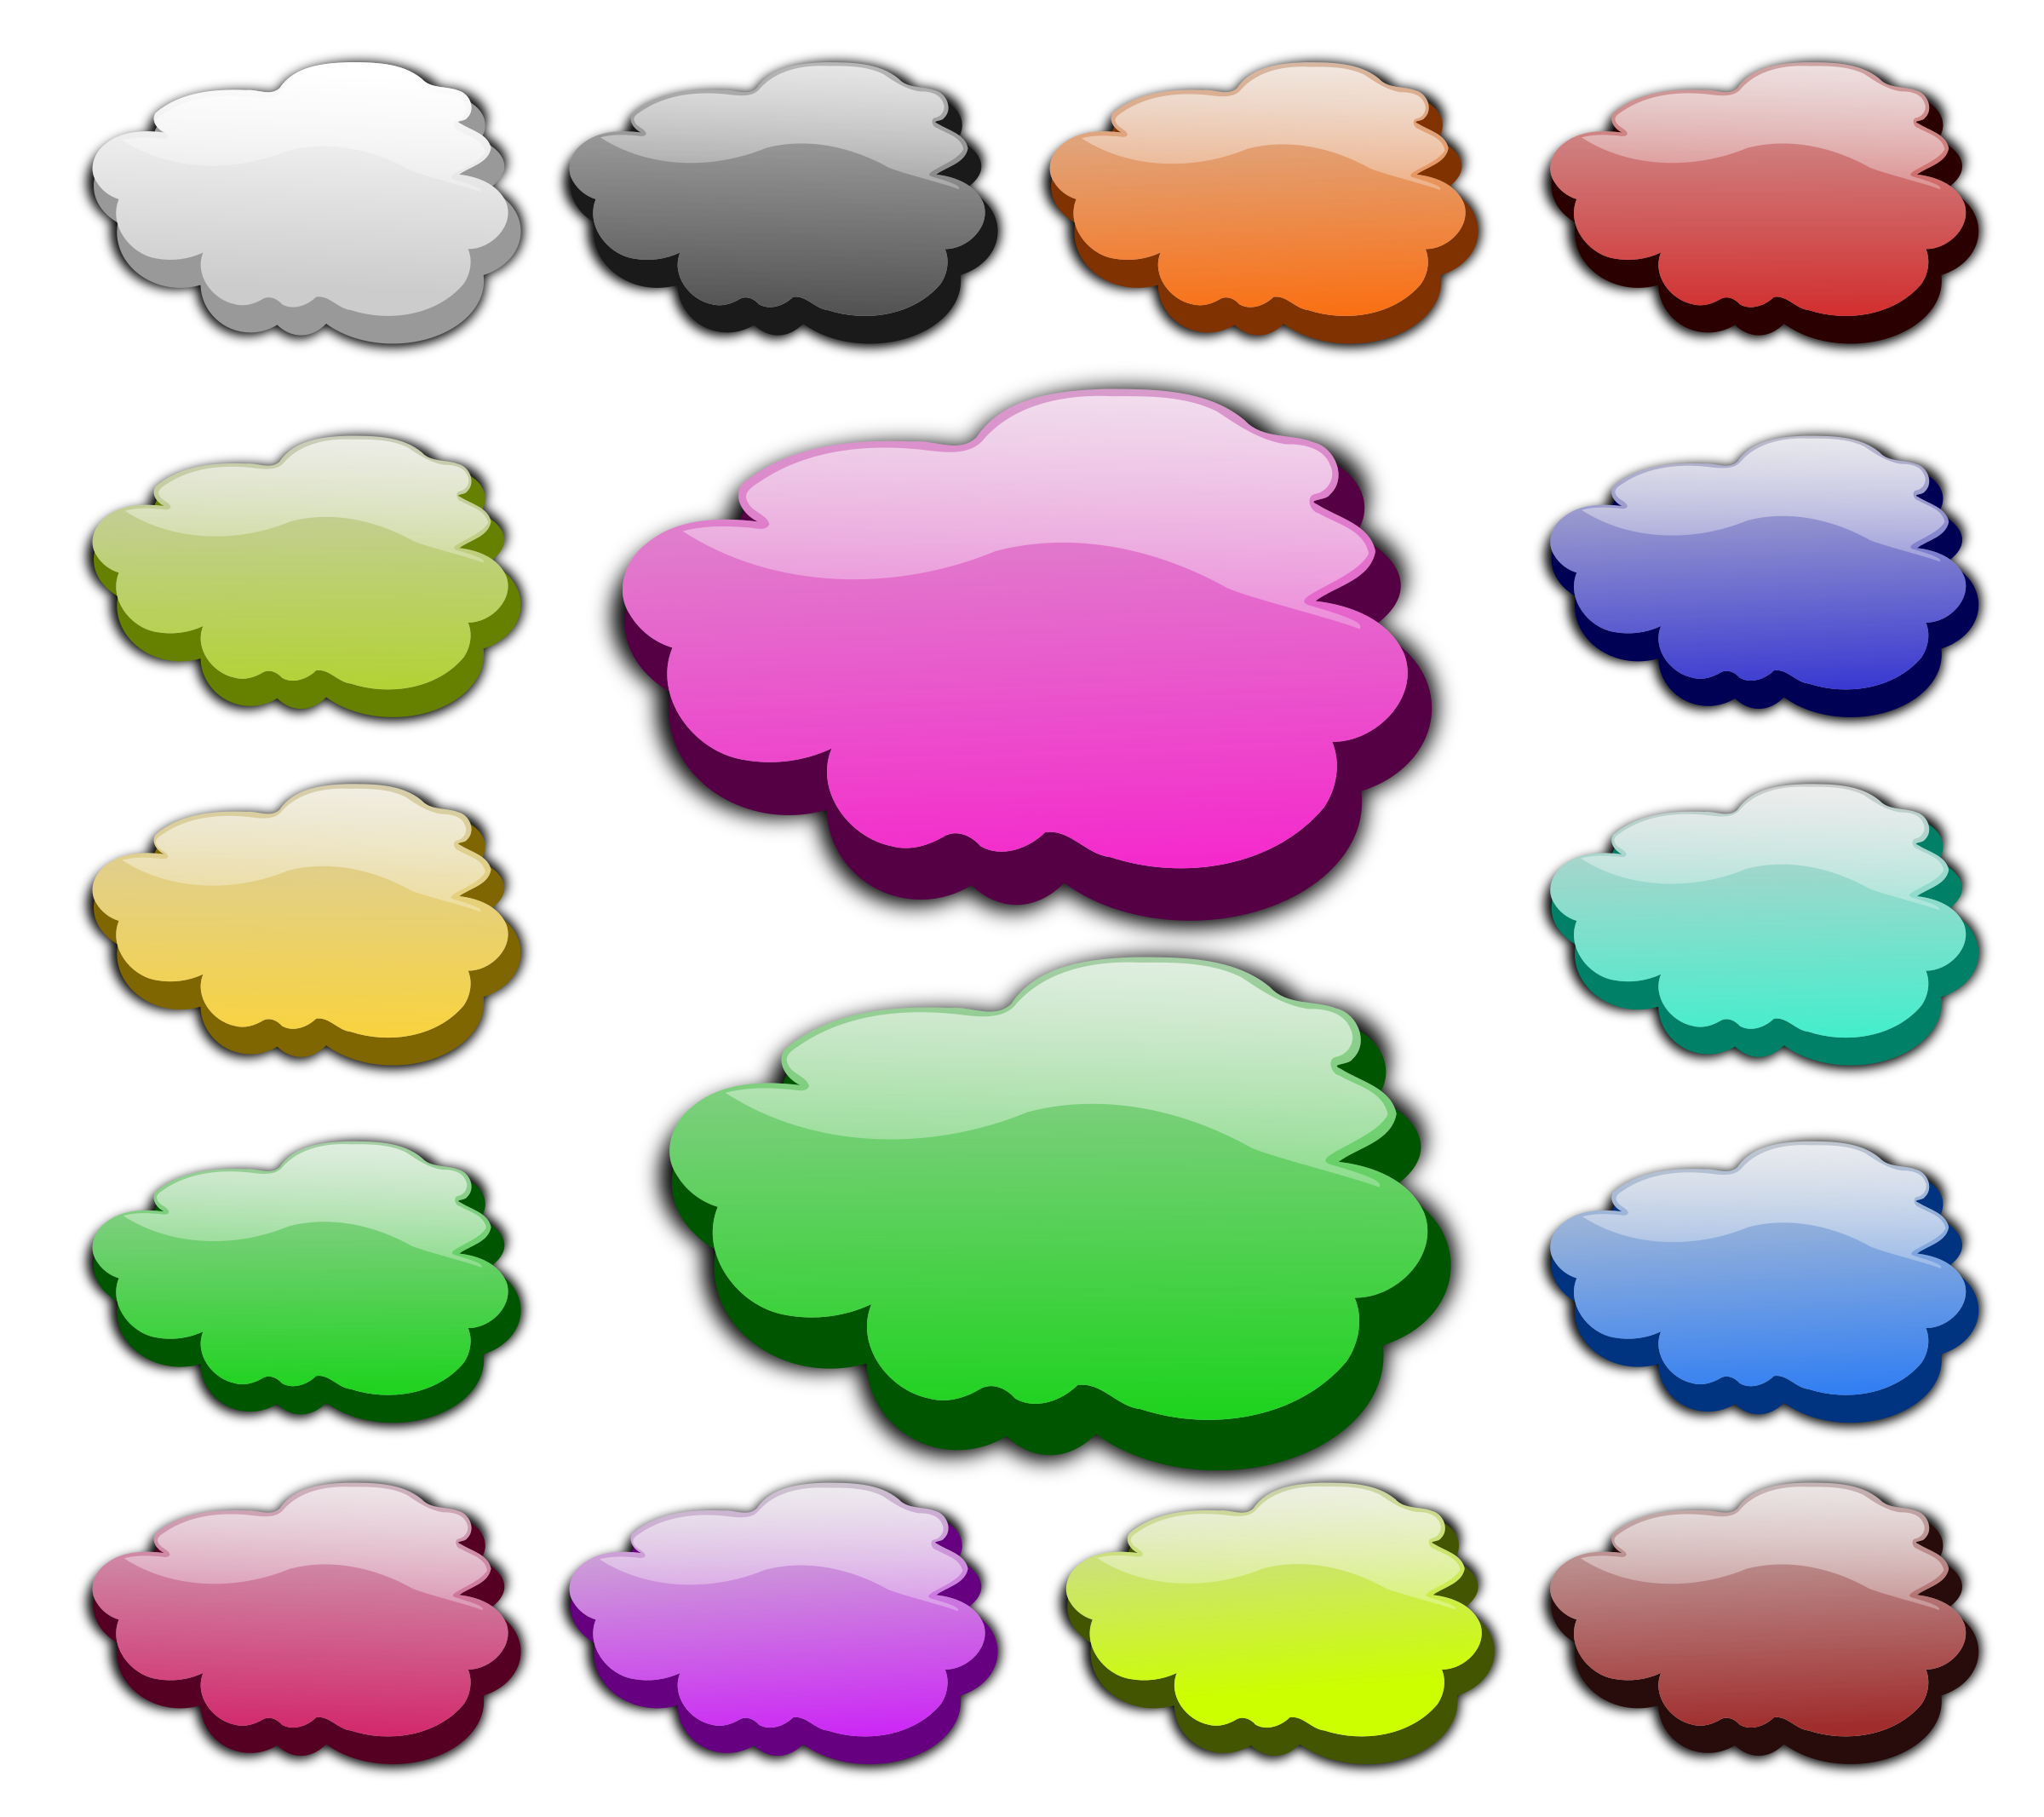 3D Clouds by inky2010